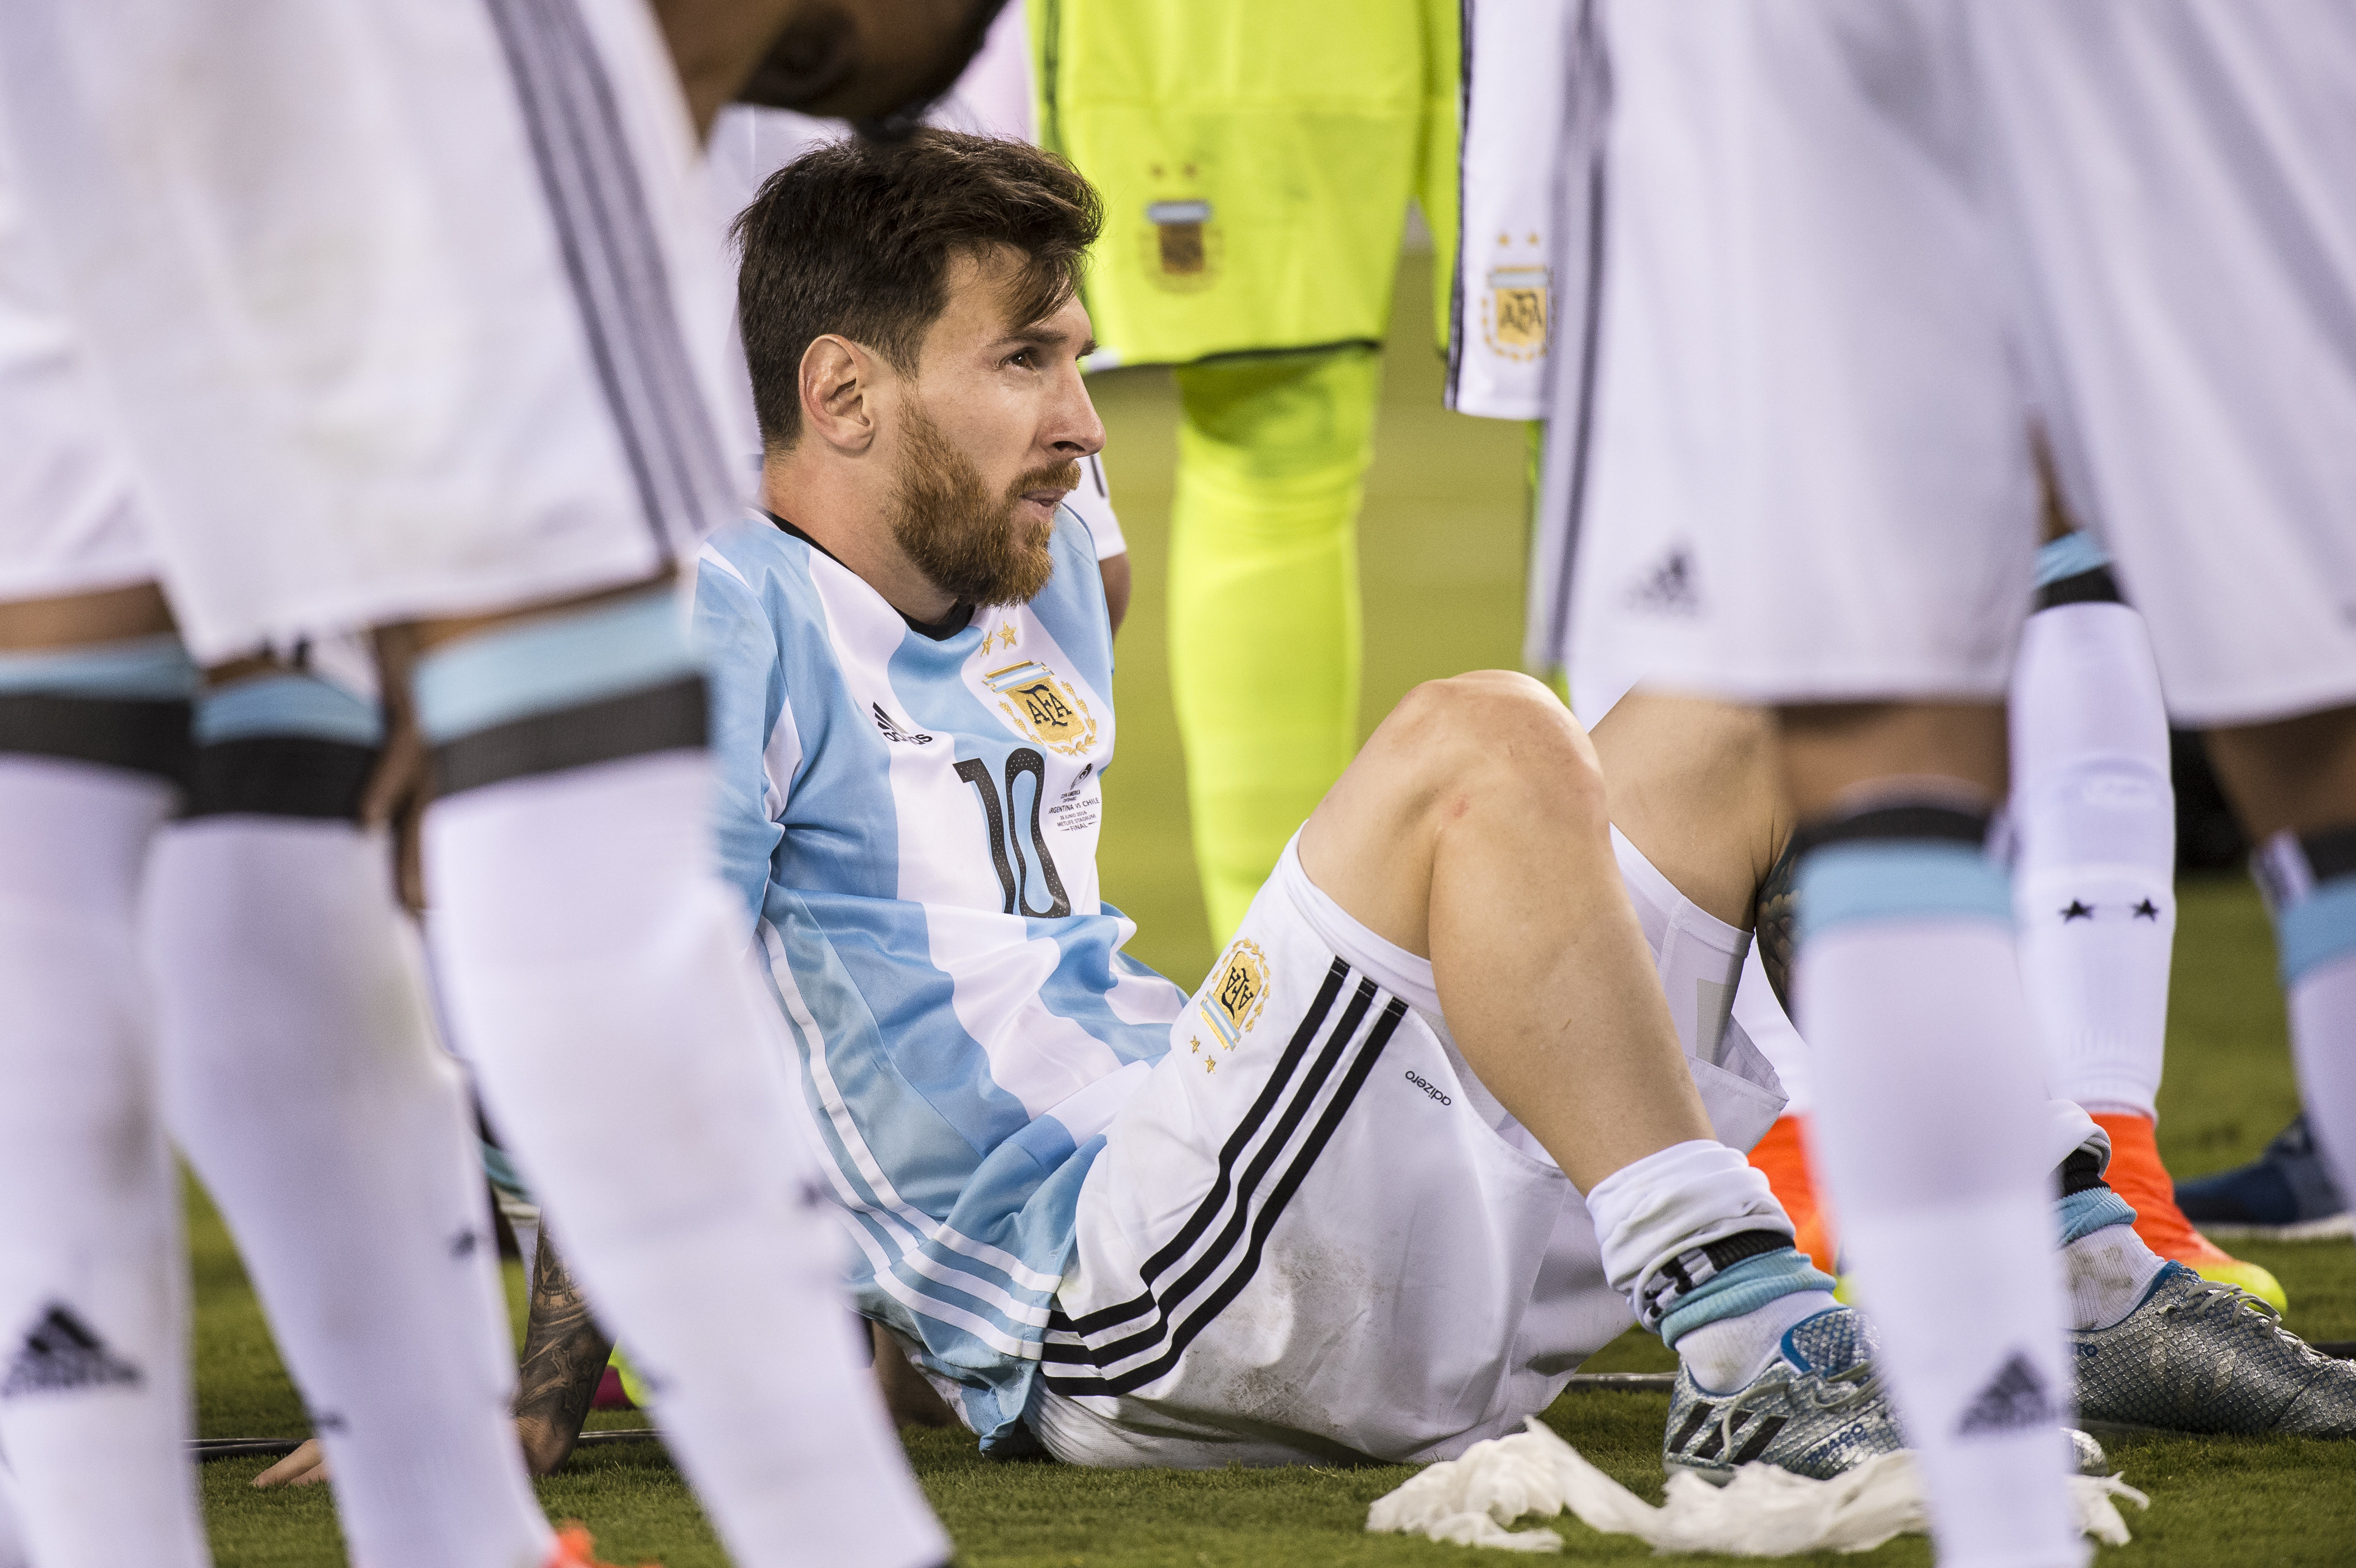 Lionel Messi after Argentina's defeat to Chile in the 2016 Copa America Final (Image Credit: PA)